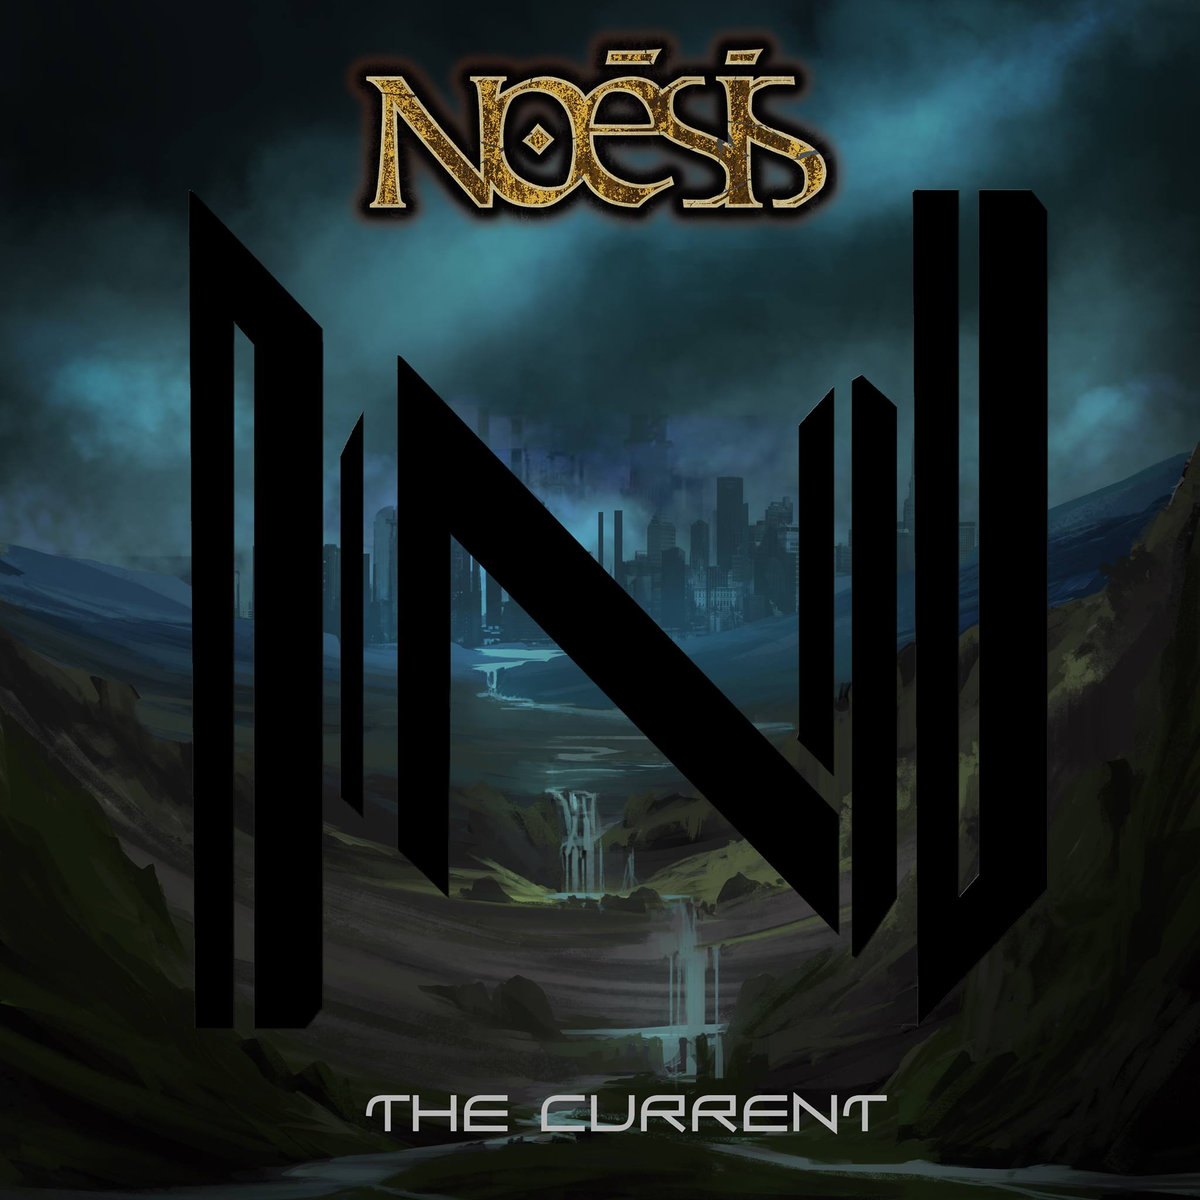 The Current - NOESIS